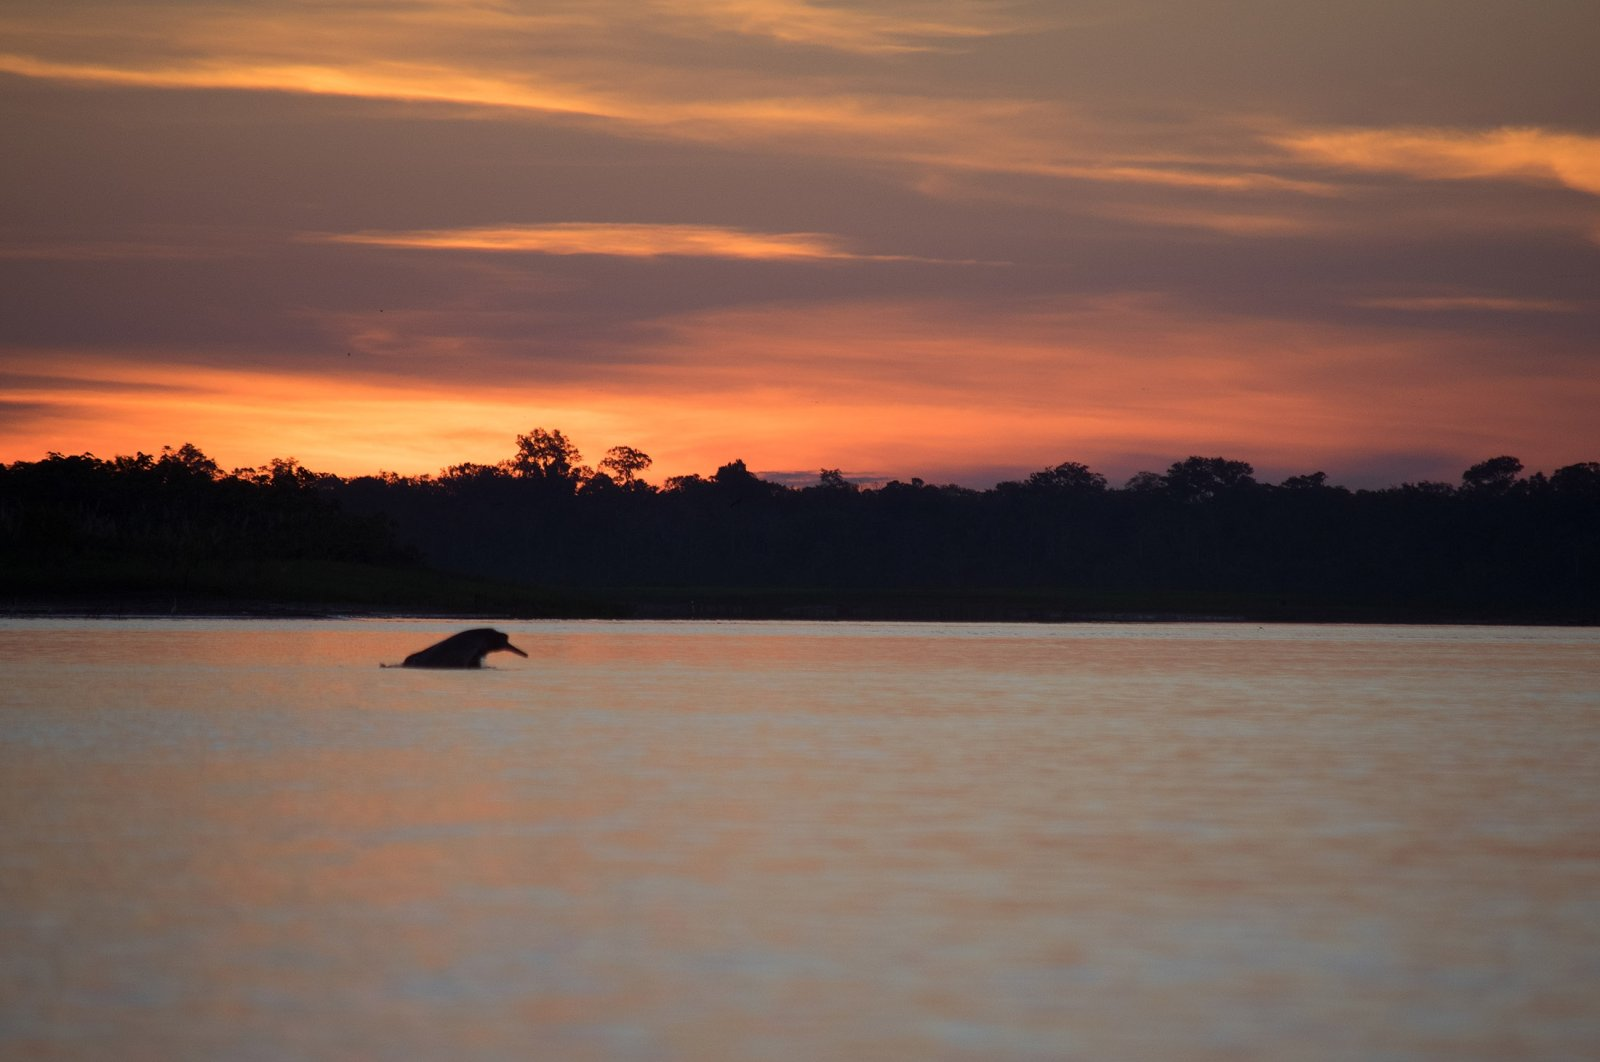 A pink river dolphin at dusk on the Amazon river. (Shutterstock Photo)